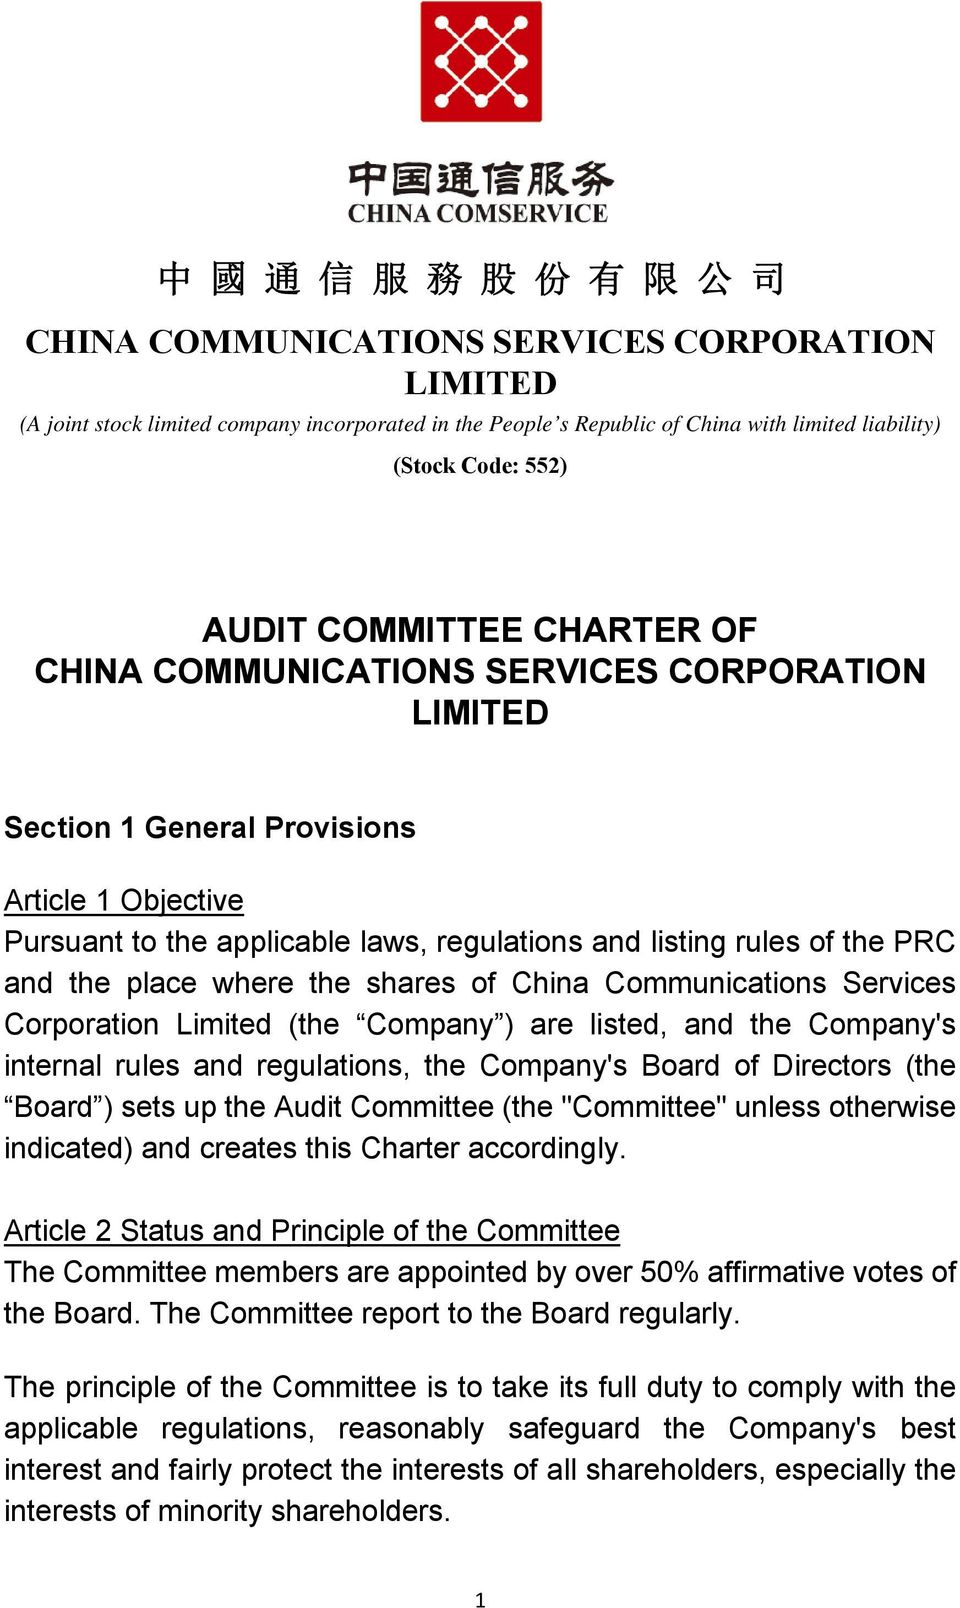 the place where the shares of China Communications Services Corporation Limited (the Company ) are listed, and the Company's internal rules and regulations, the Company's Board of Directors (the